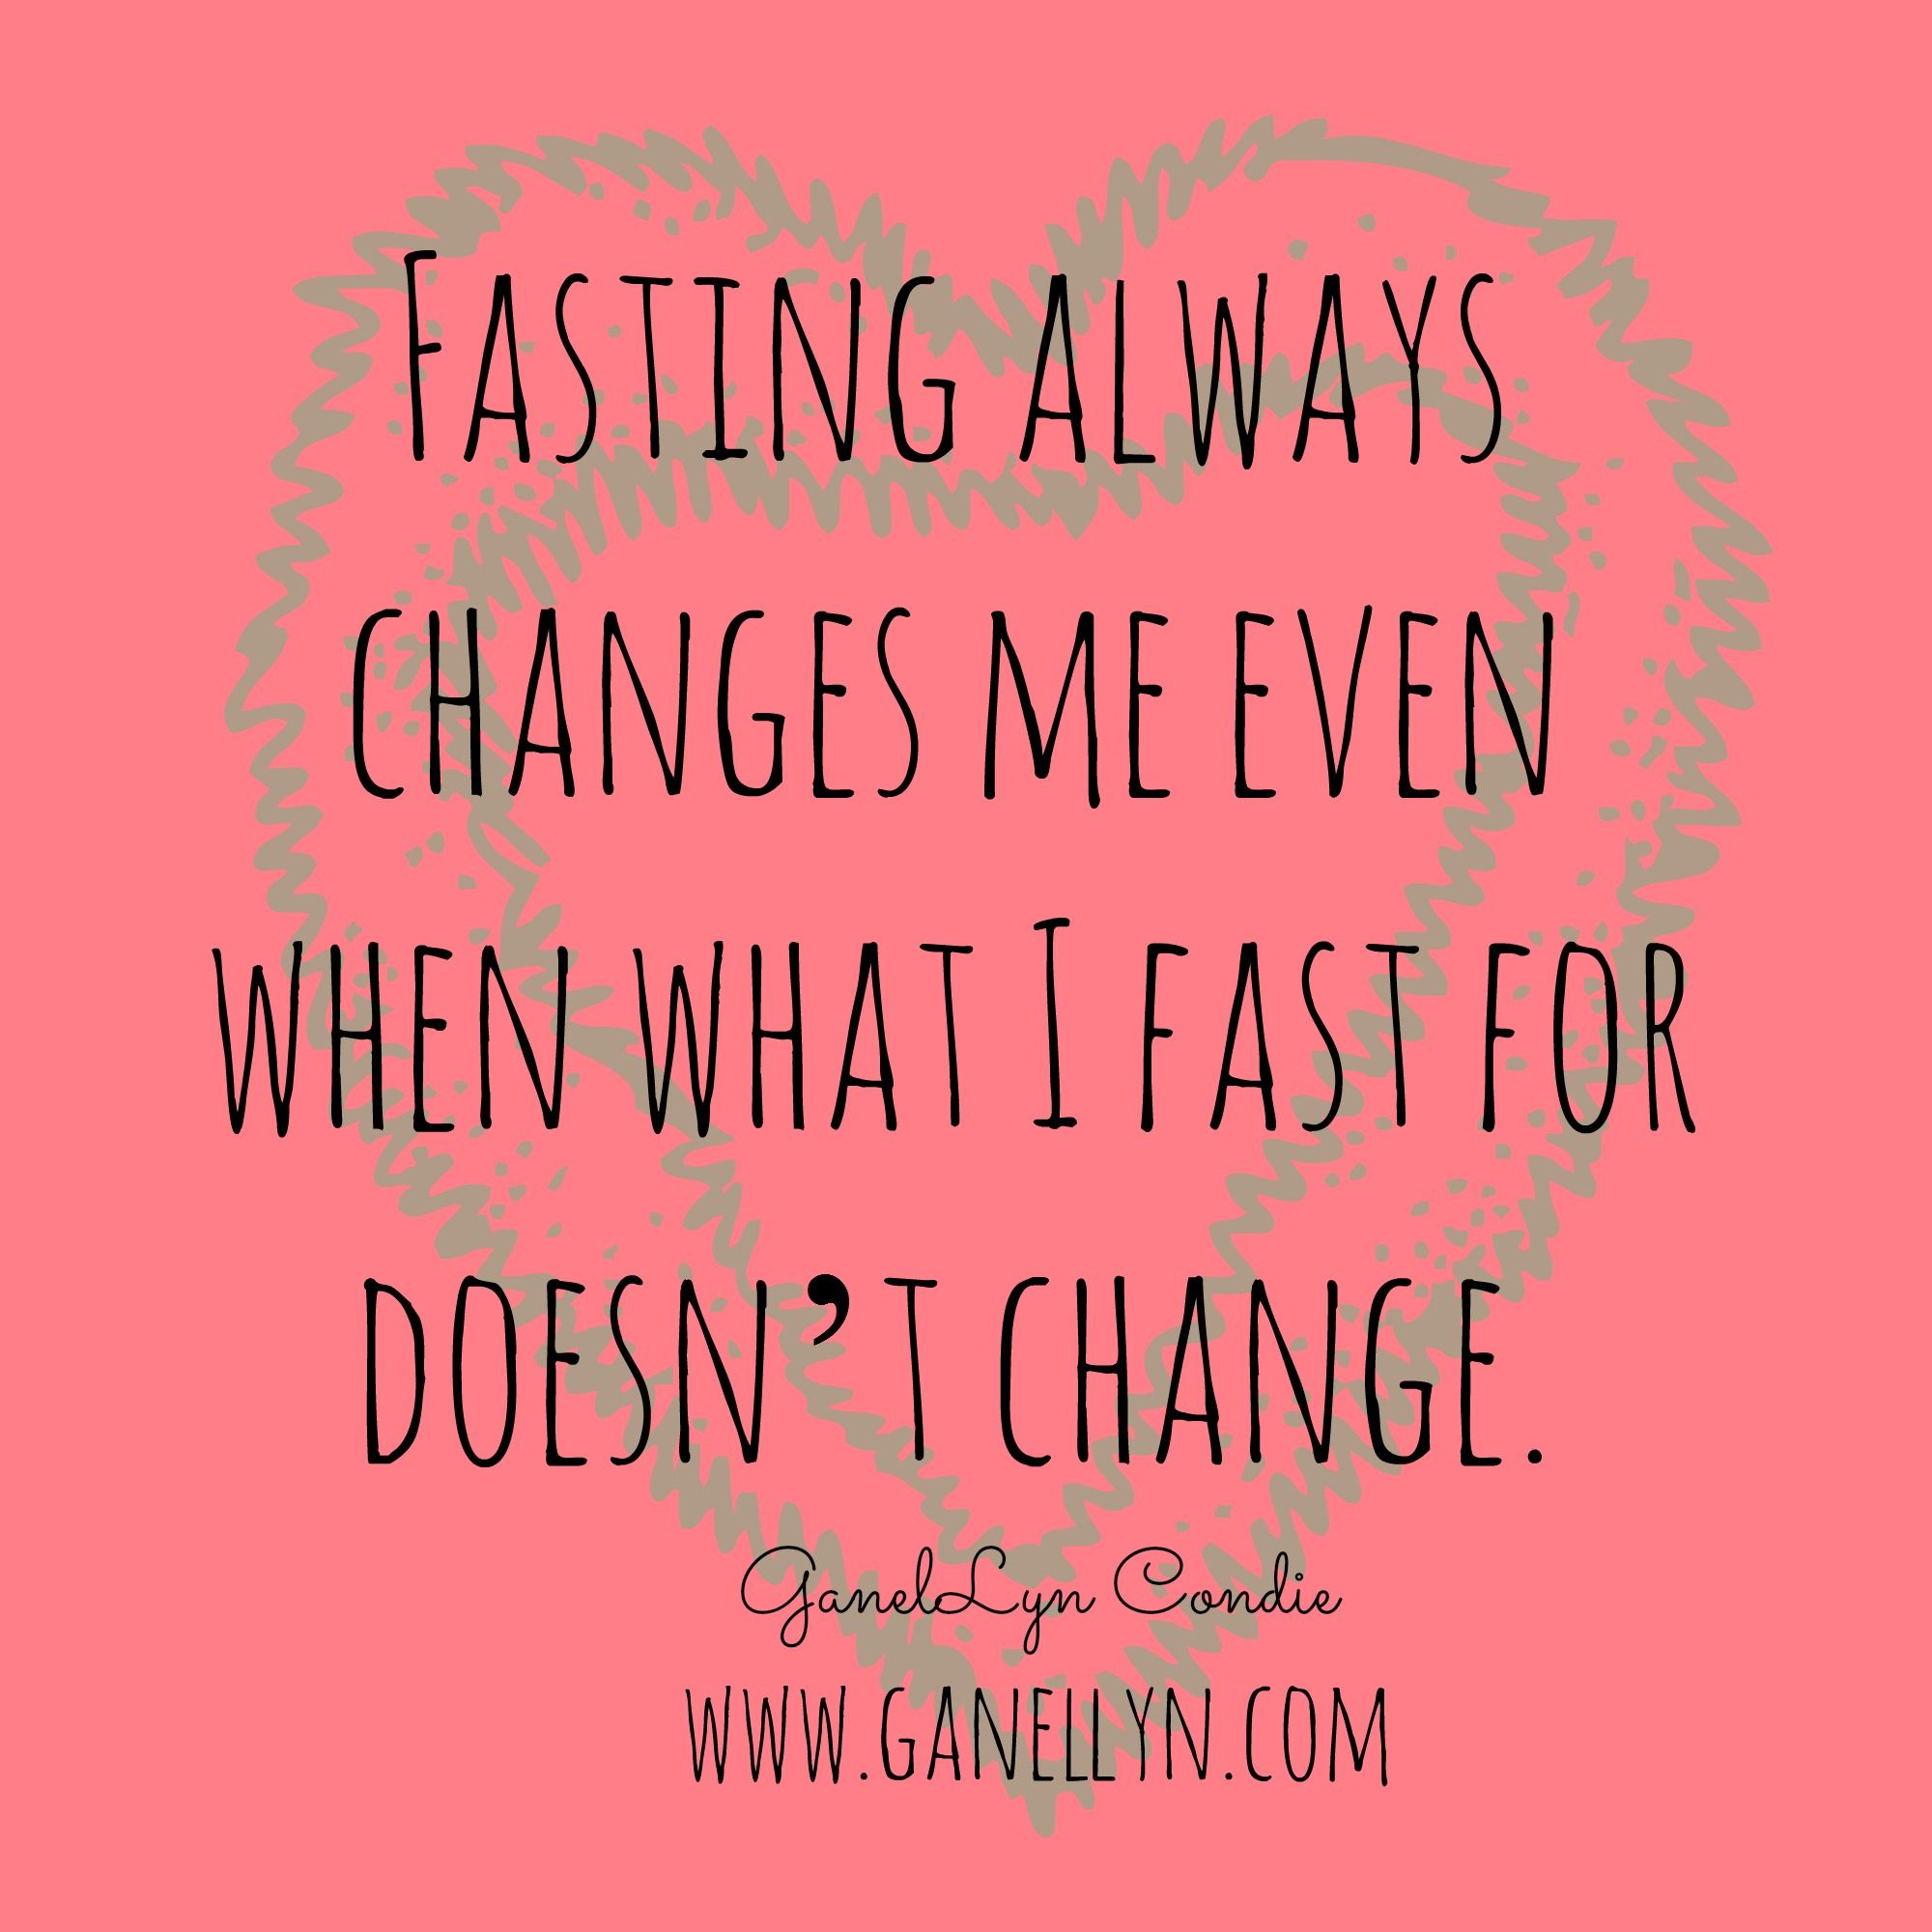 Lds Quotes On Fasting Quotesgram Quotes Pinterest Lds Quotes